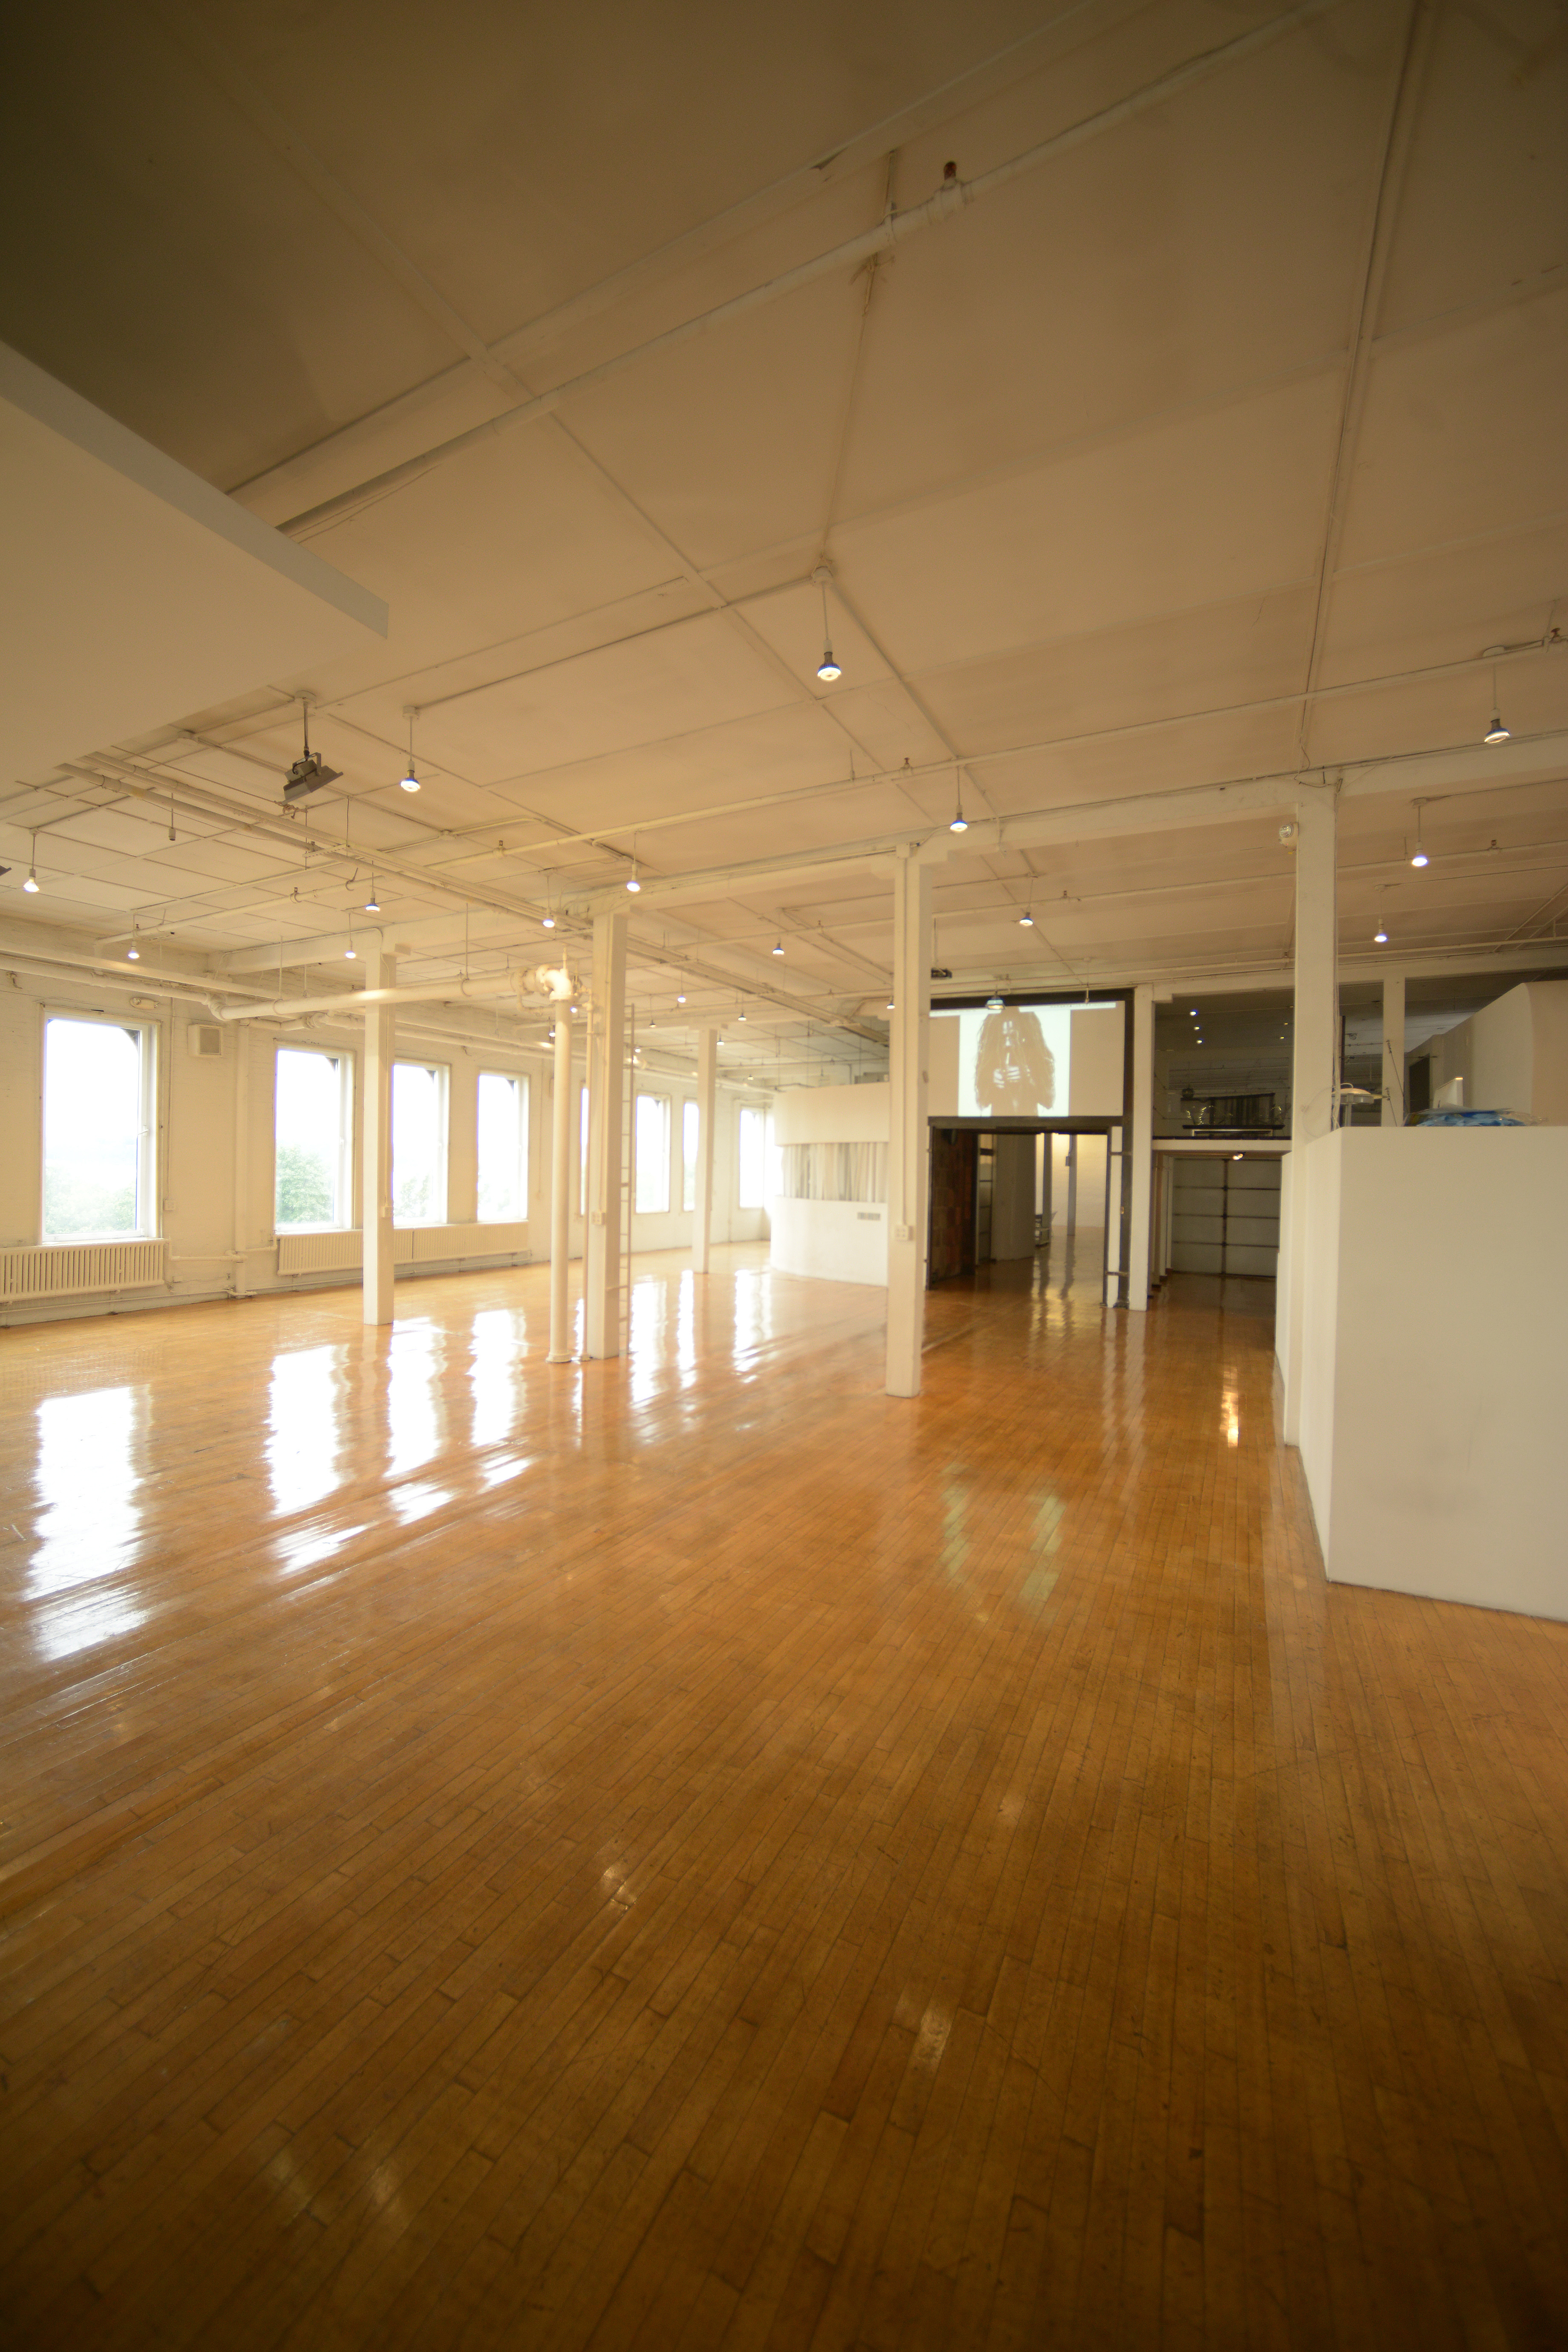 30 Cute Cost to Refinish Hardwood Floors Nyc 2021 free download cost to refinish hardwood floors nyc of search plan and book your private event in new york city nyc ny in michelson studio event space in new york city nyc ny nj area